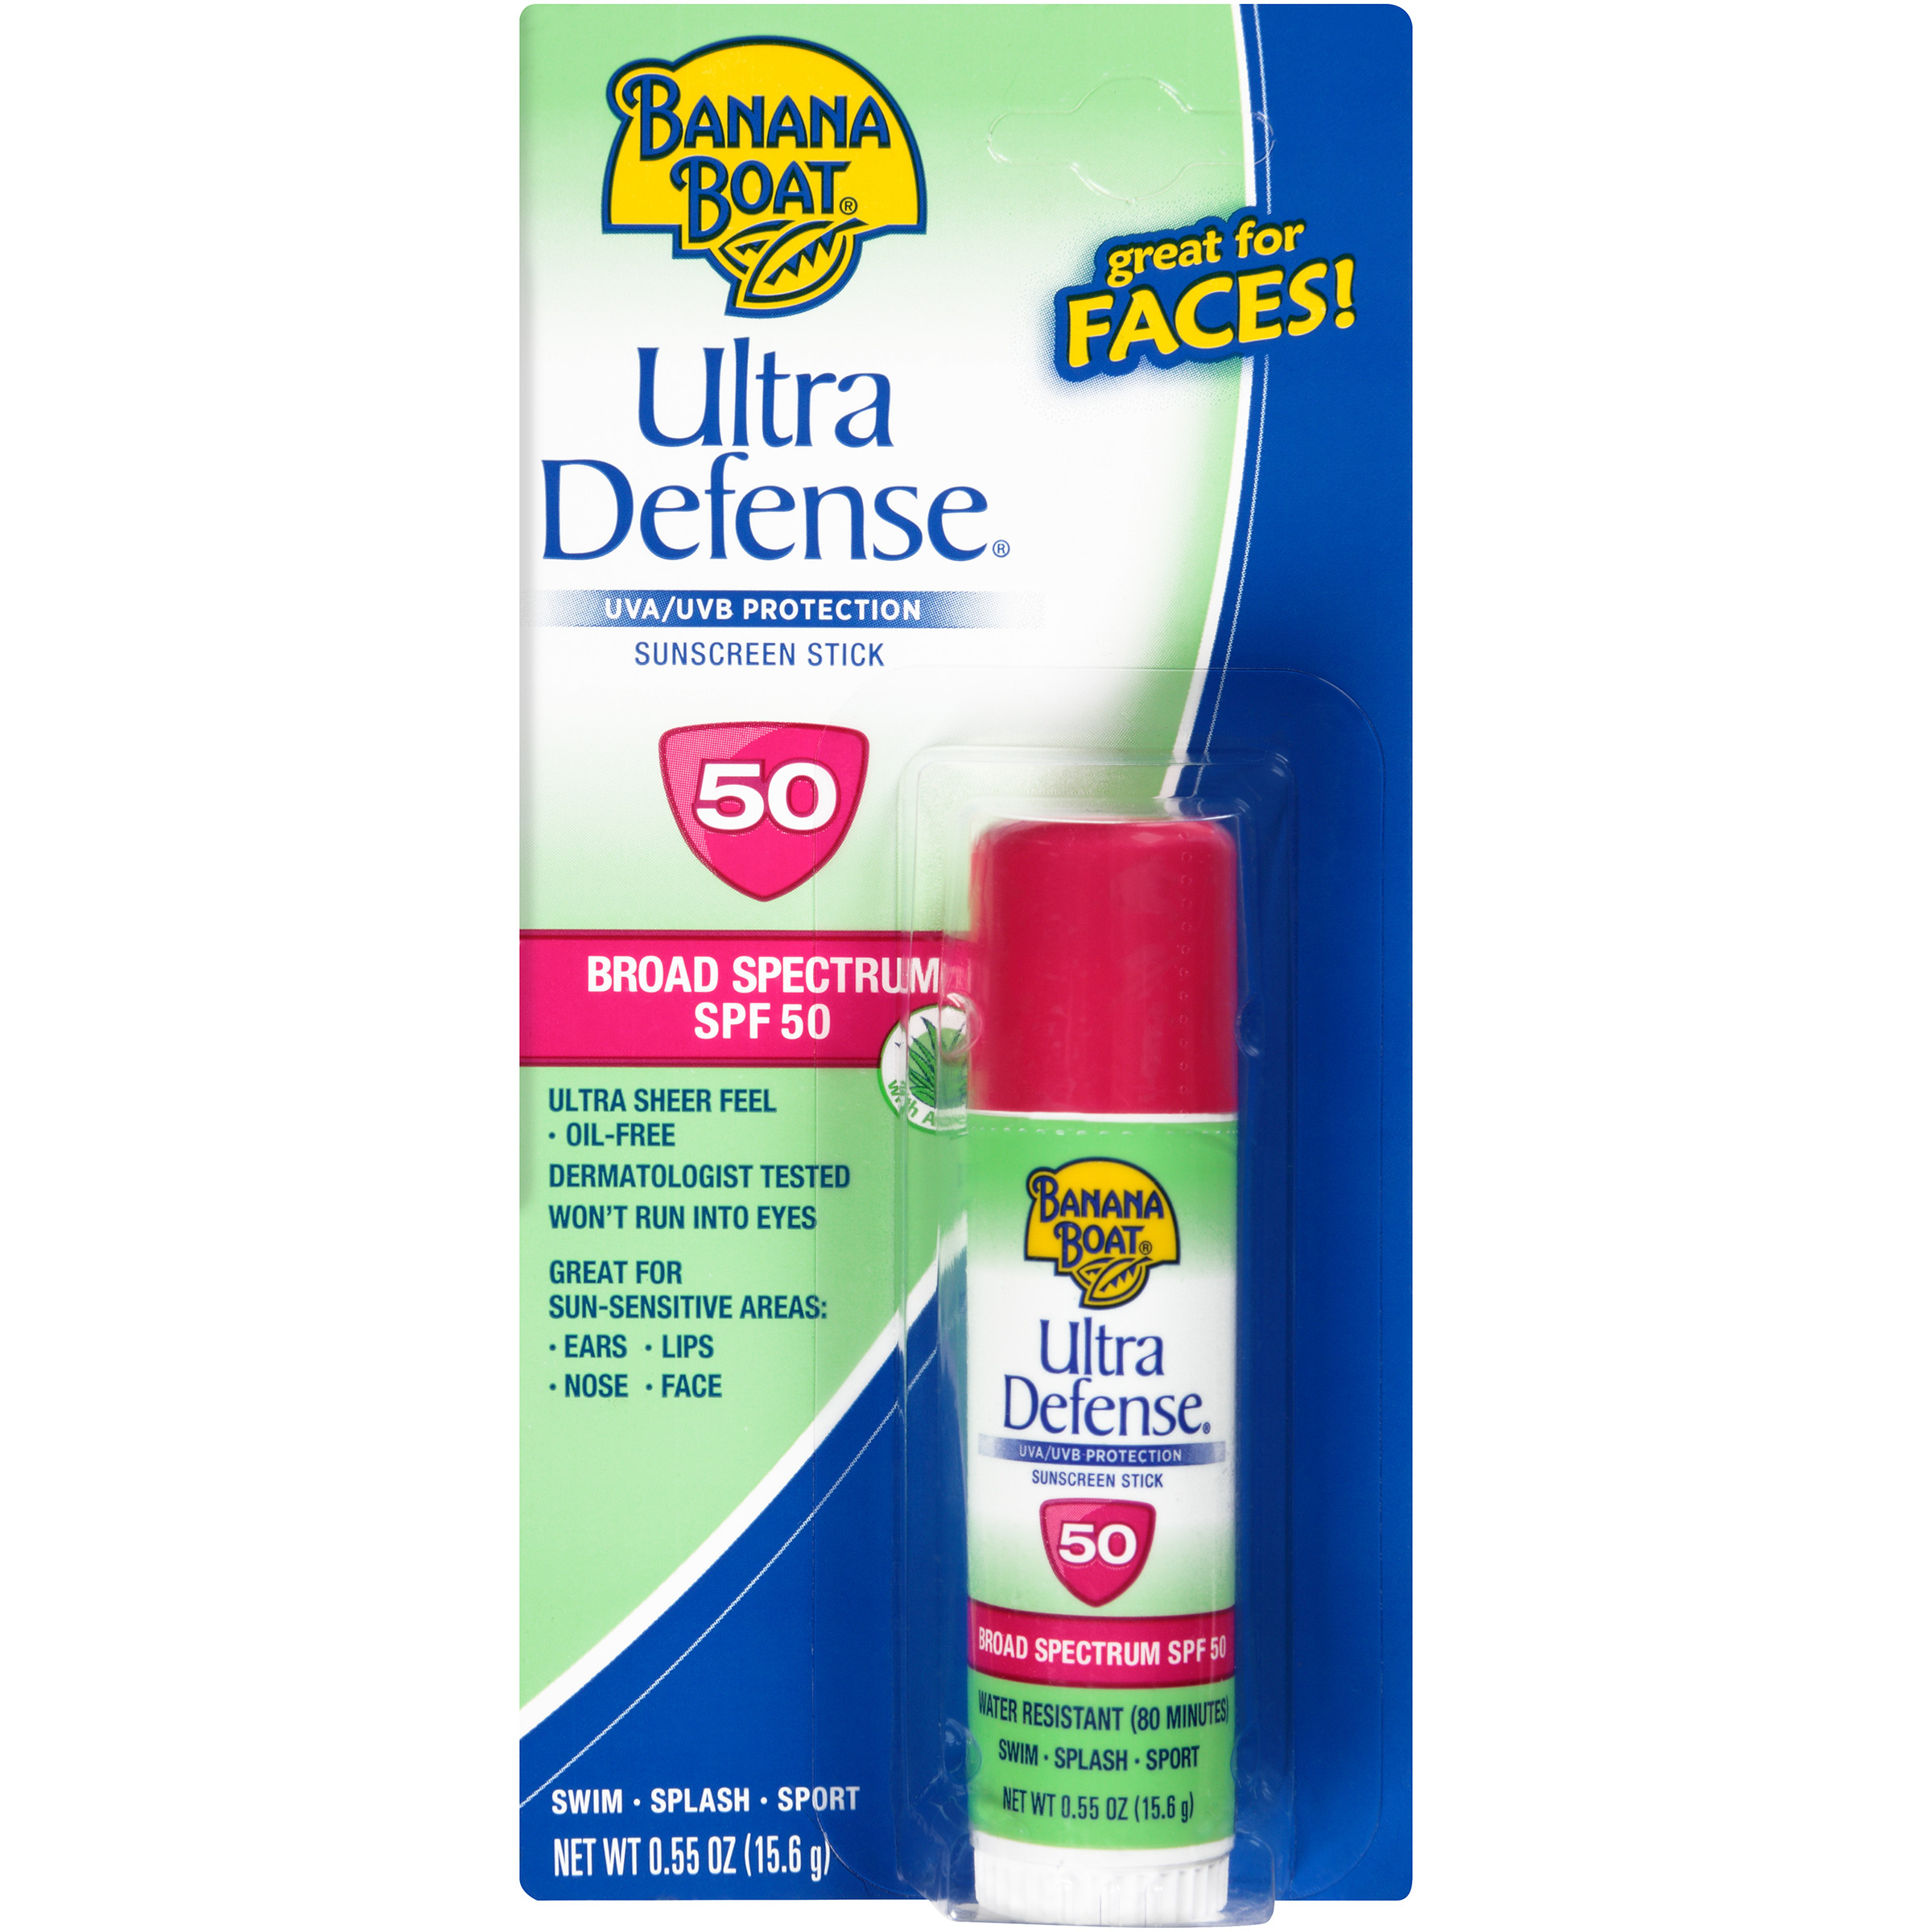 Banana Boat Ultra Defense Face Sunscreen Stick Broad Spectrum SPF 50 - 0.55 Ounces